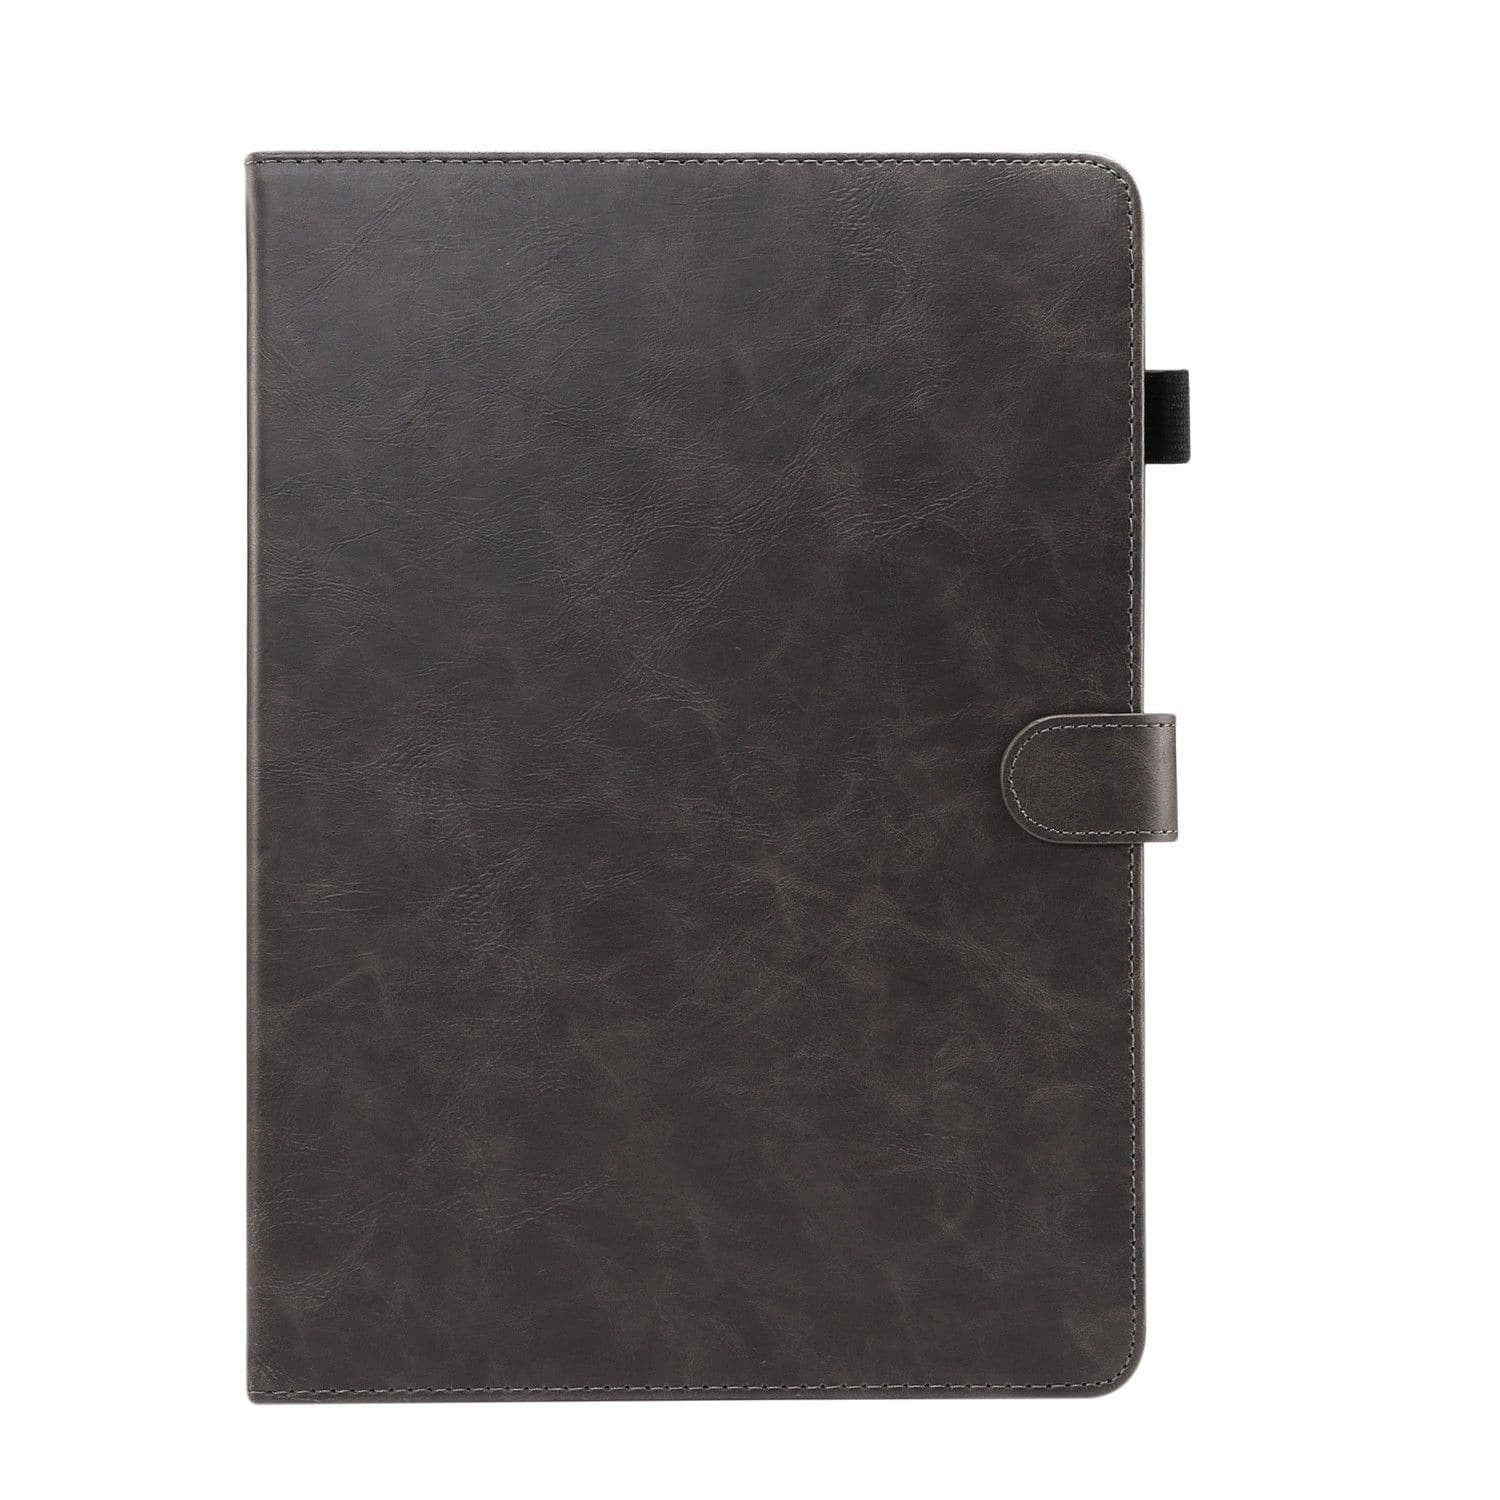 Wallet Case for iPad Pro 11 (2018) grey